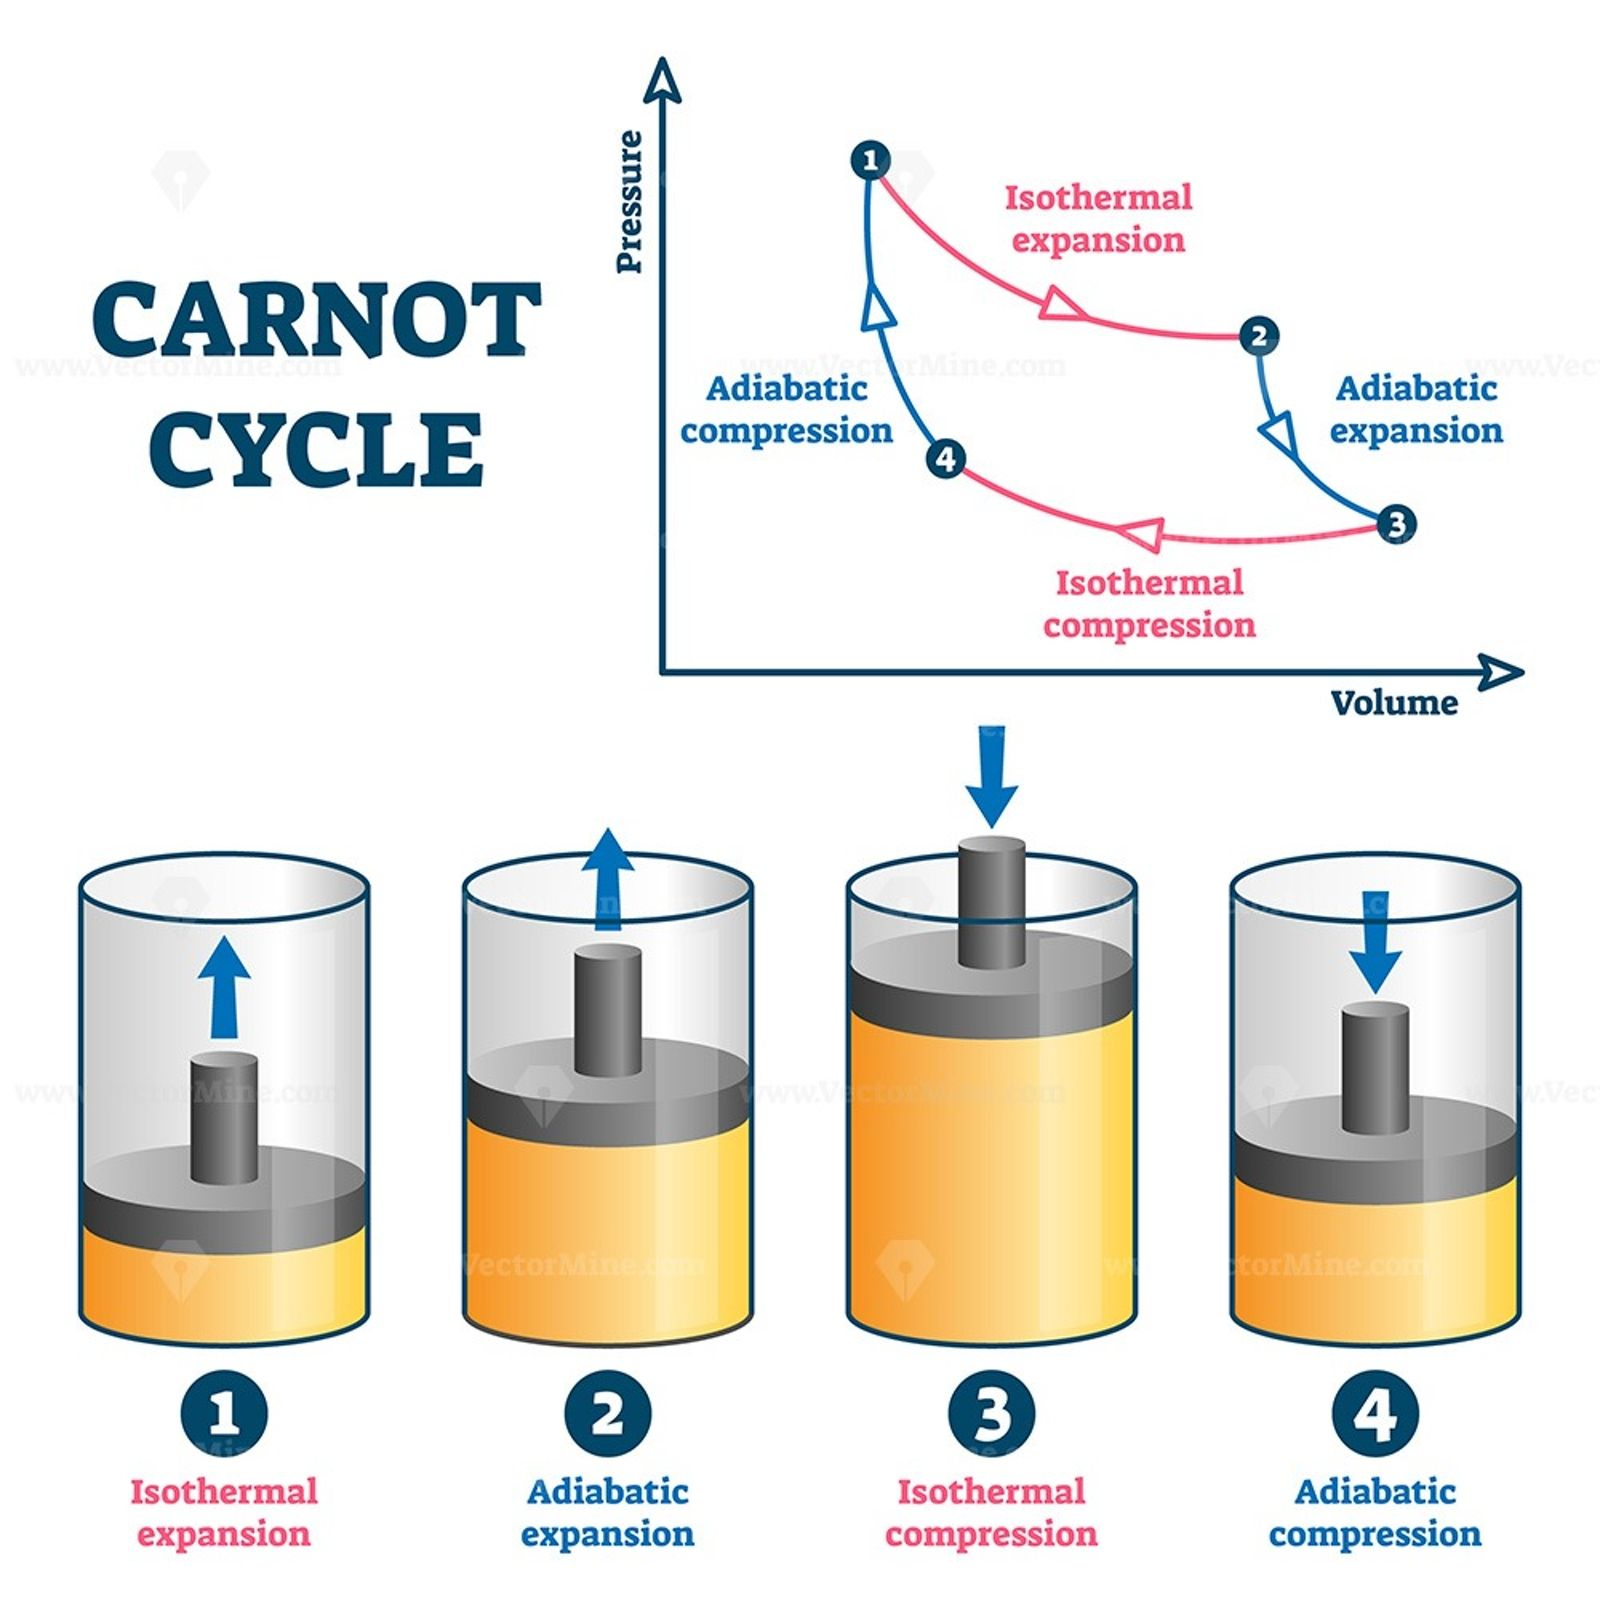 Carnot Cycle Vector Illustration In 2020 Vector Illustration Illustration Cycle